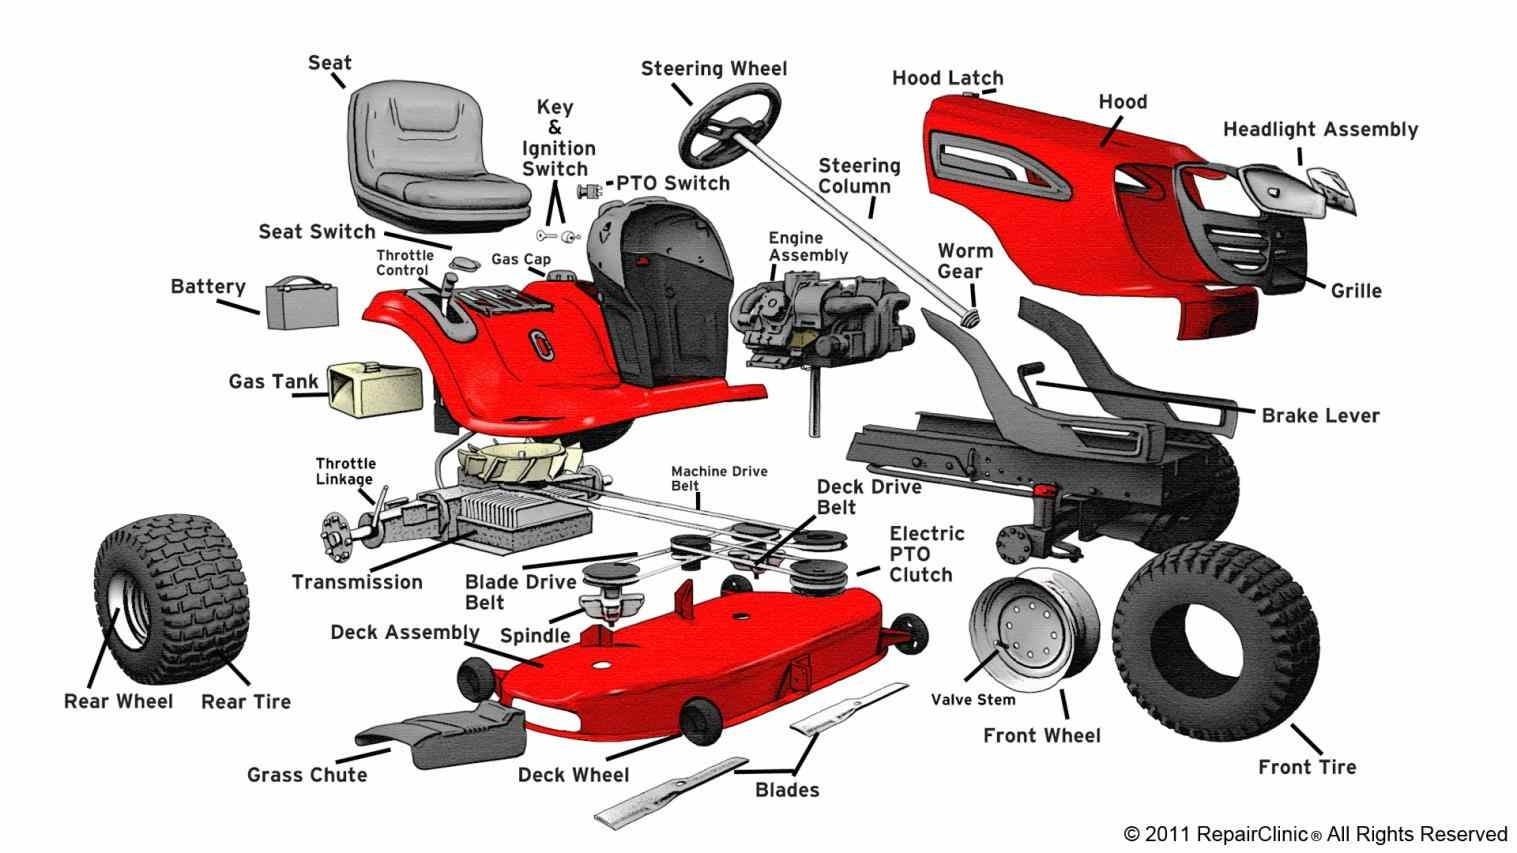 Craftsman Lawn Mower Parts Diagram Image Gallery - Hcpr with Craftsman Self Propelled Lawn Mower Parts Diagram